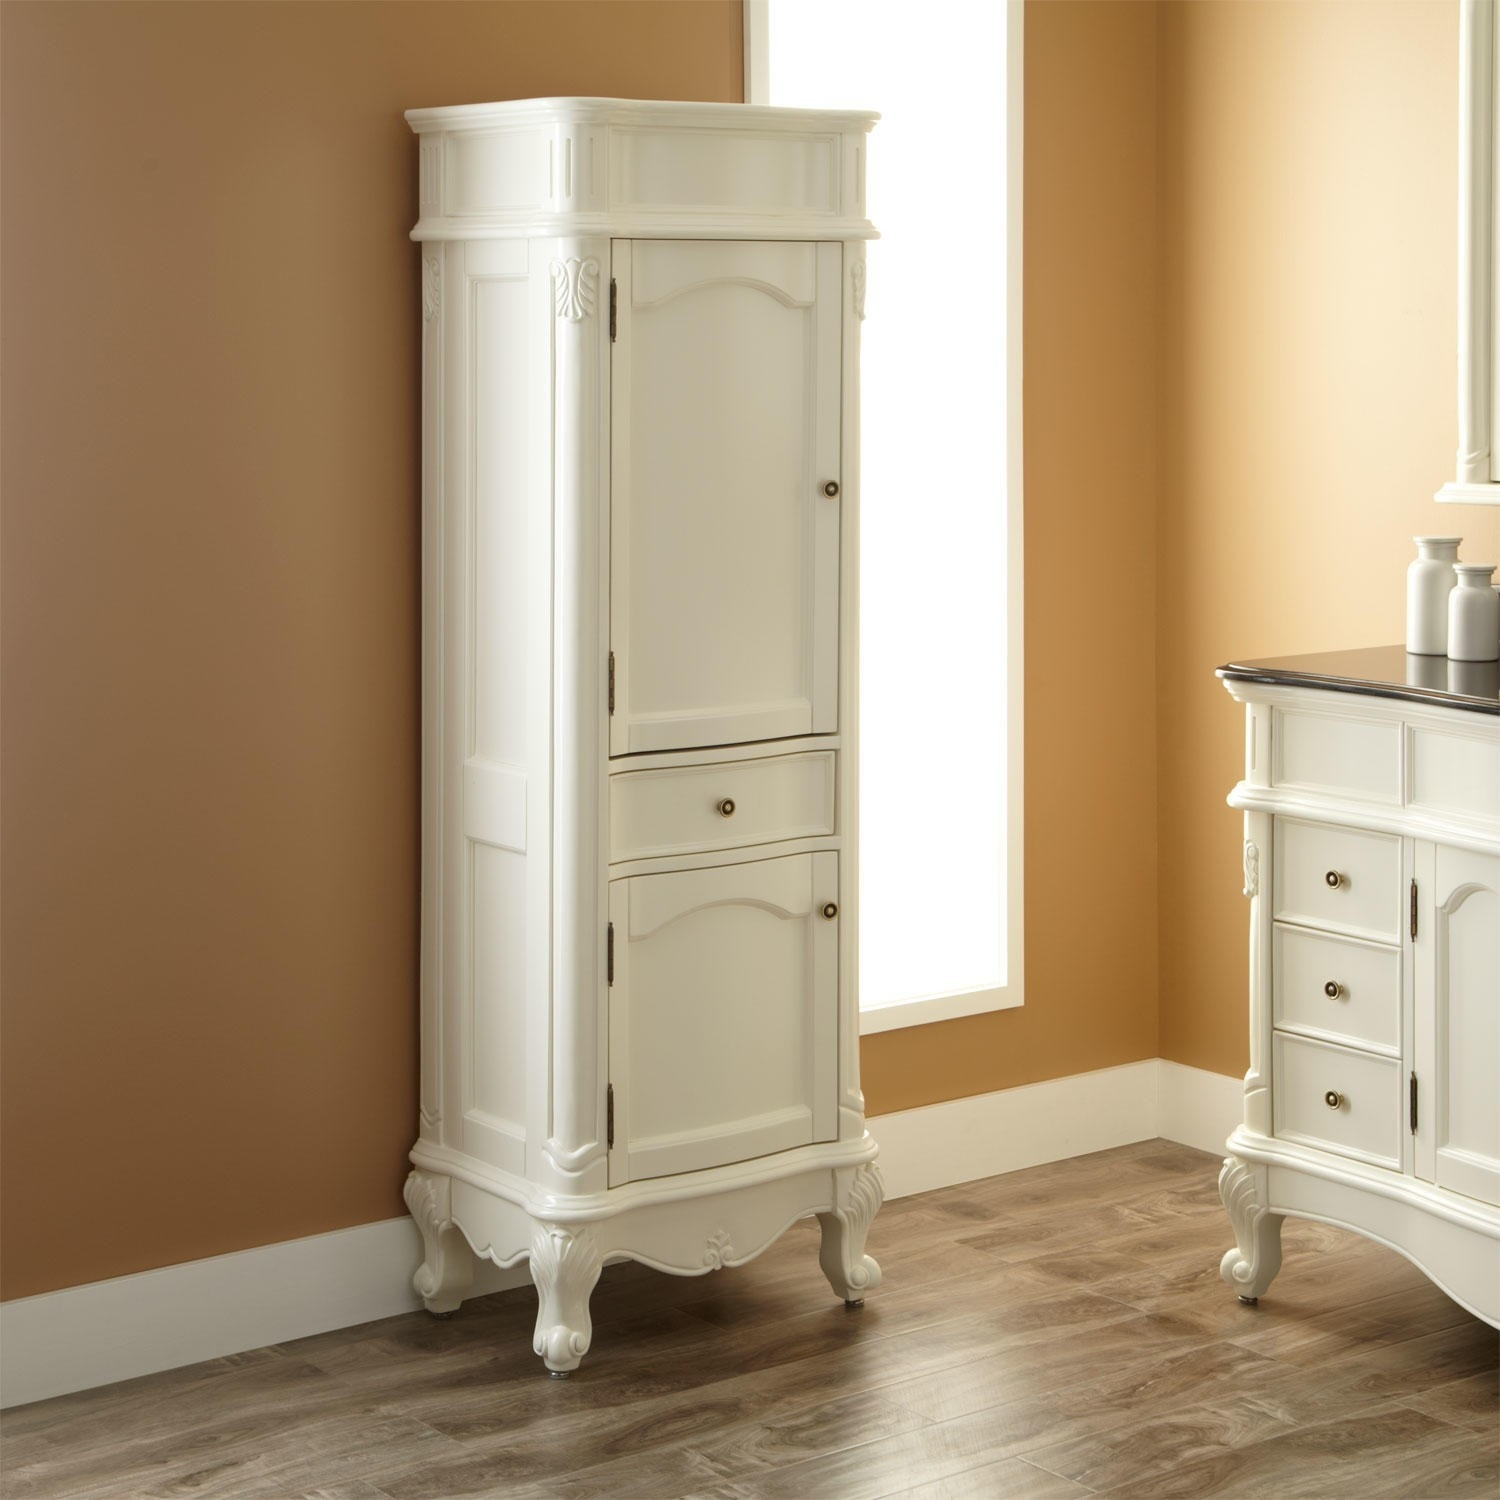 Tall Freestanding Bathroom Cabinets1500 X 1500